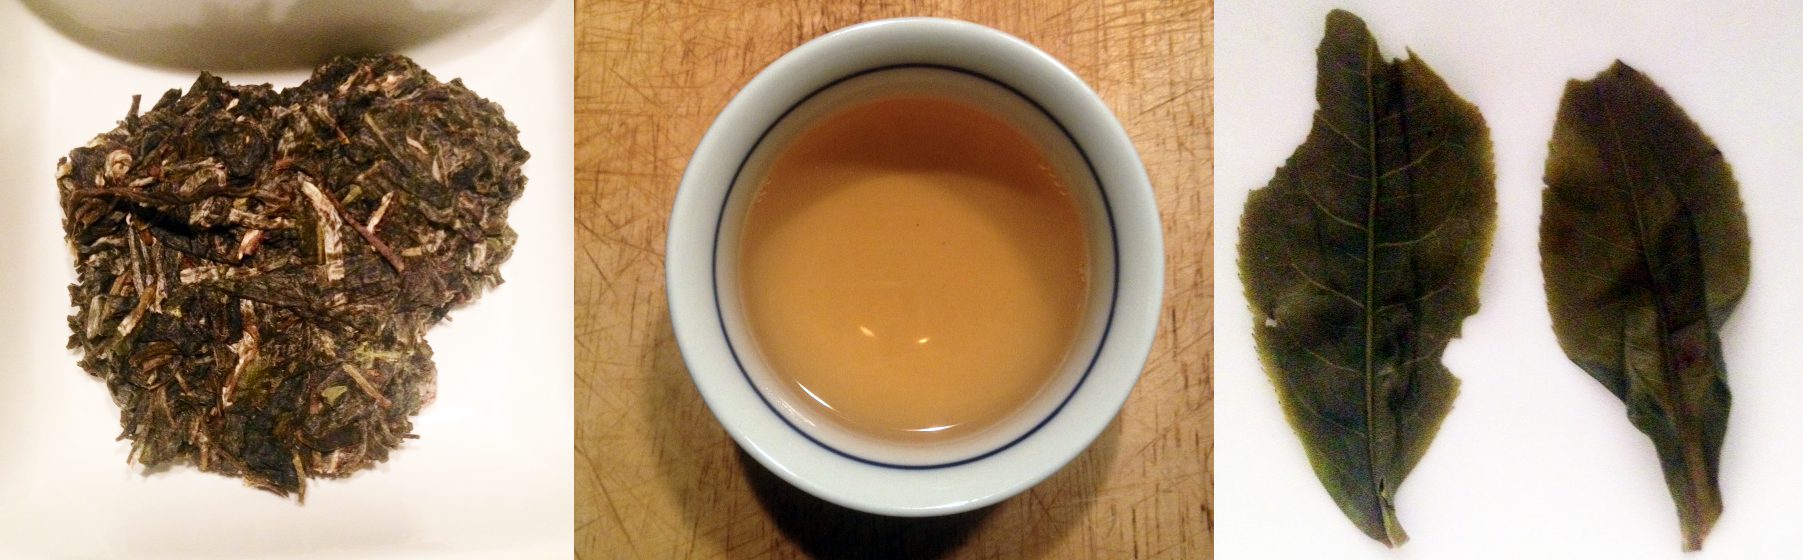 2015 Last thoughts raw puerh